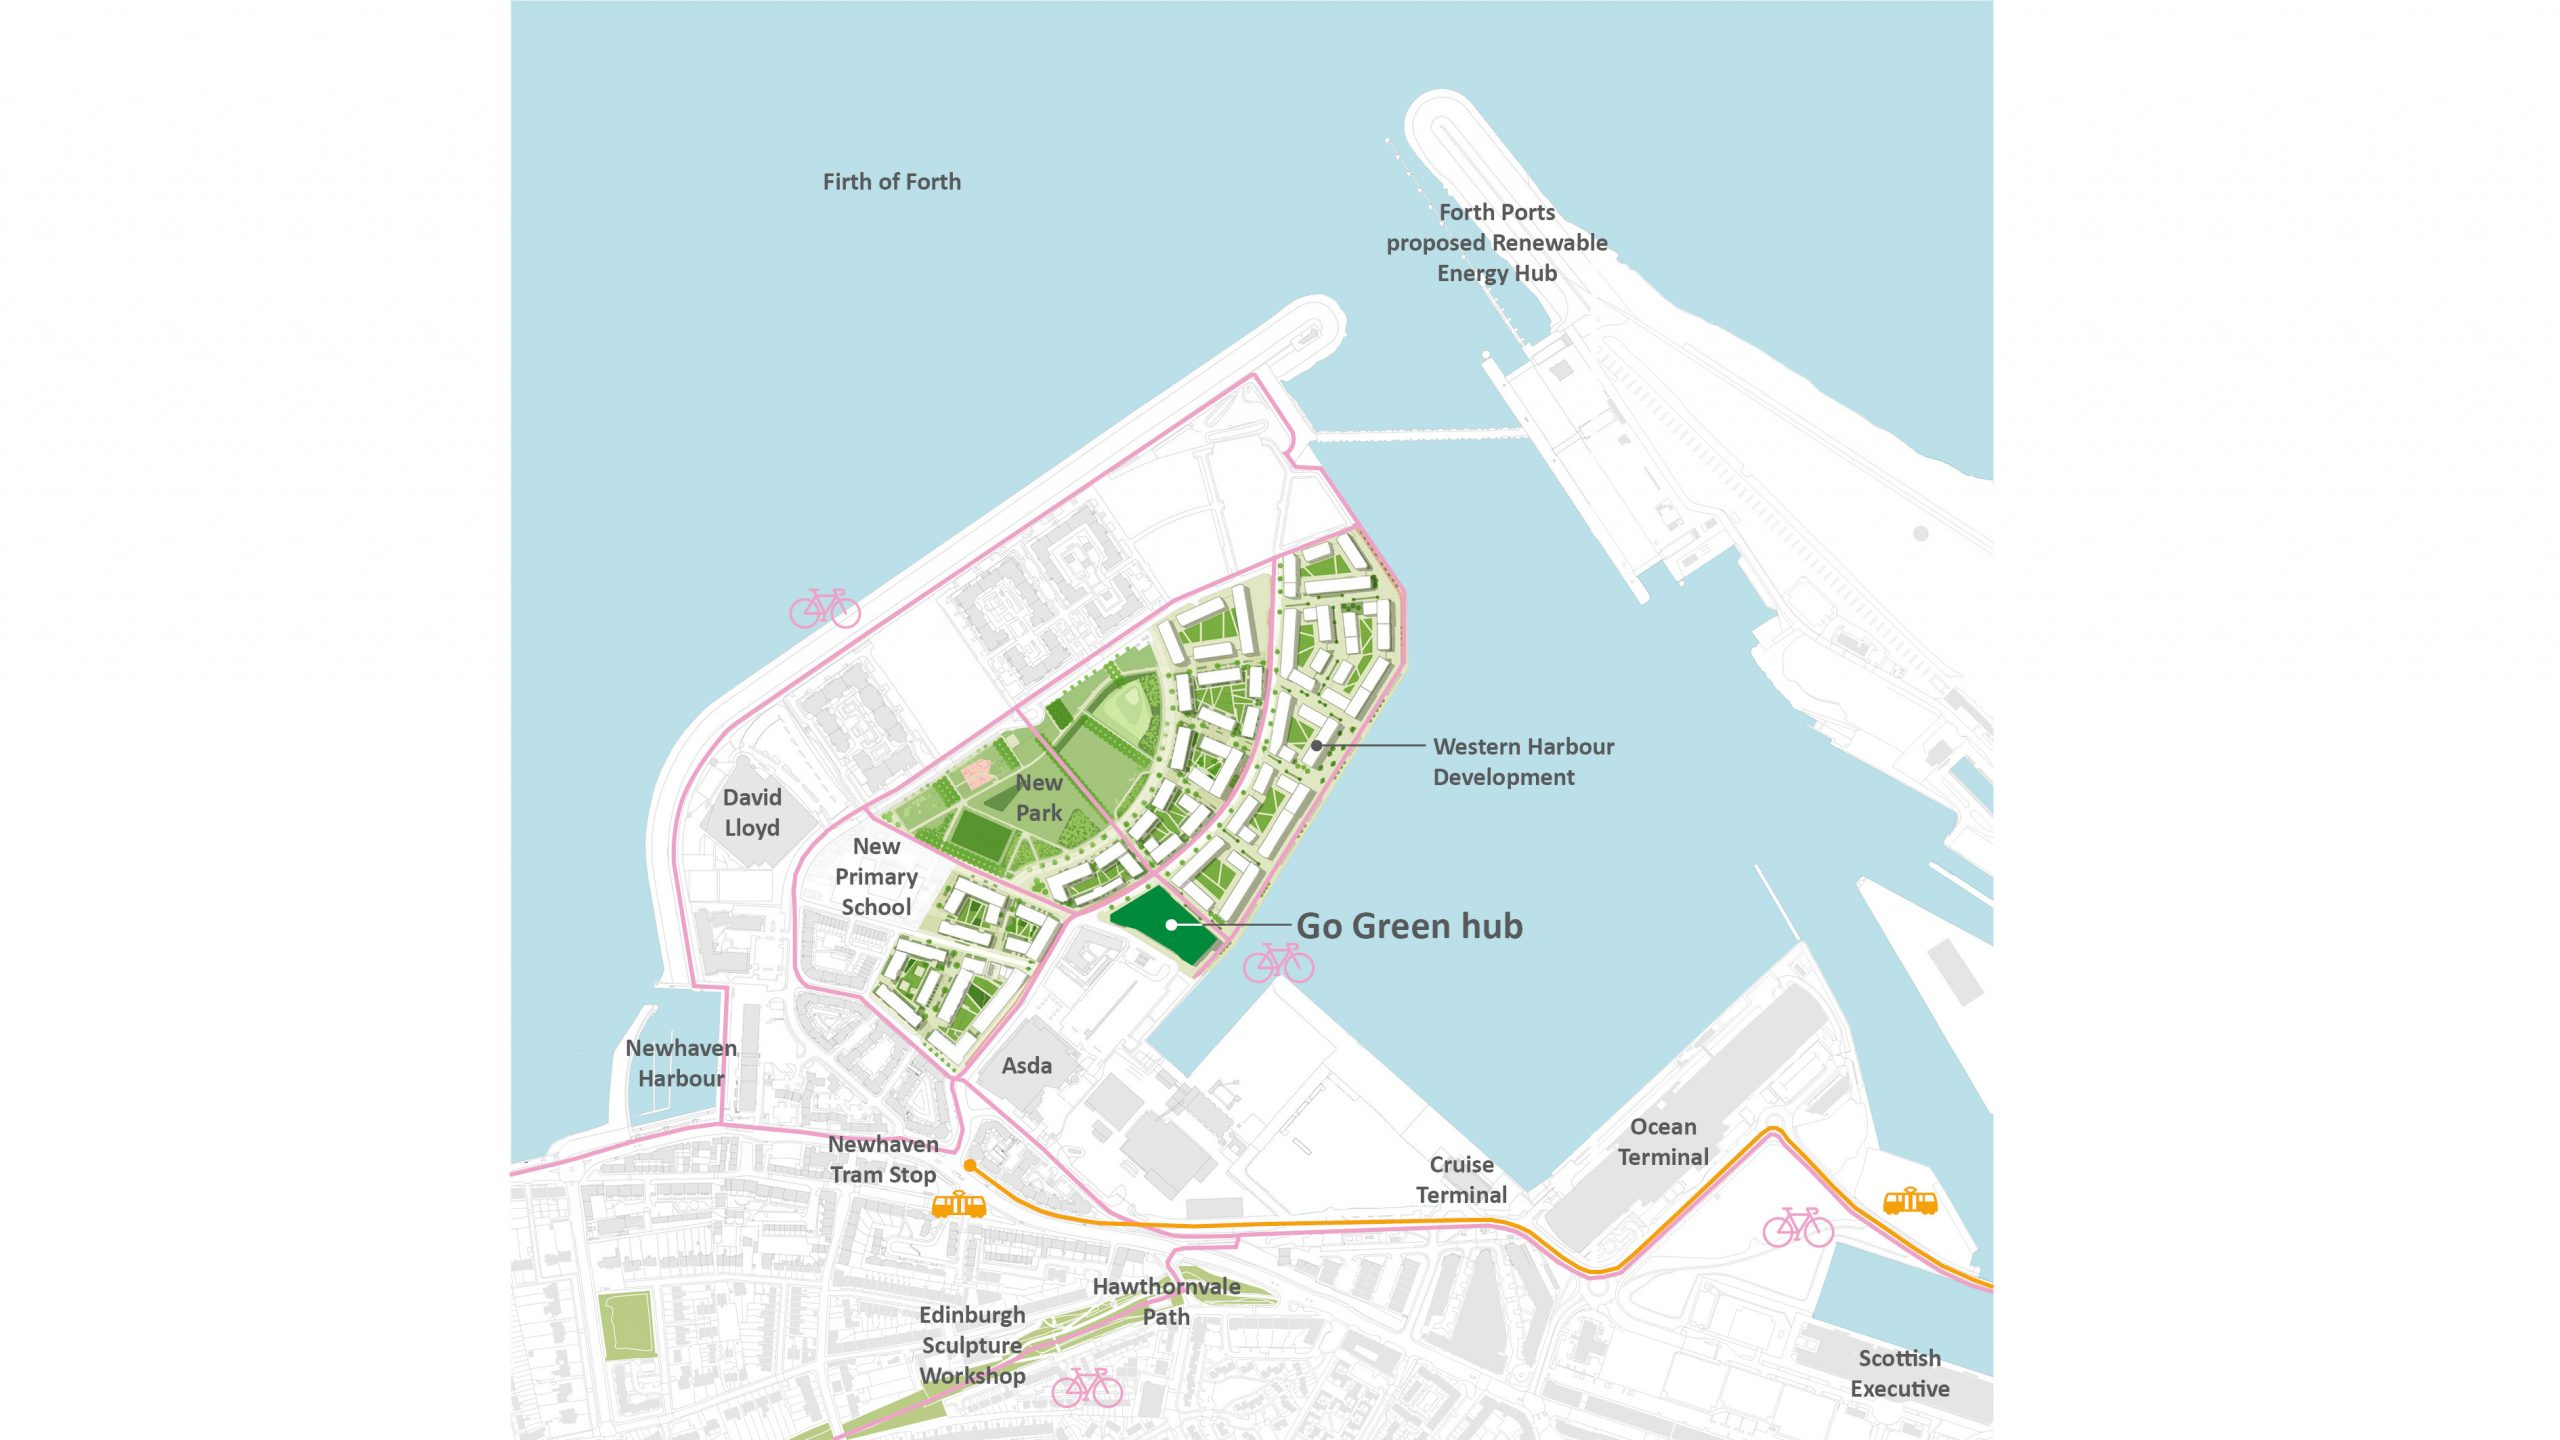 Western Harbour - Property and Constructions News Scotland